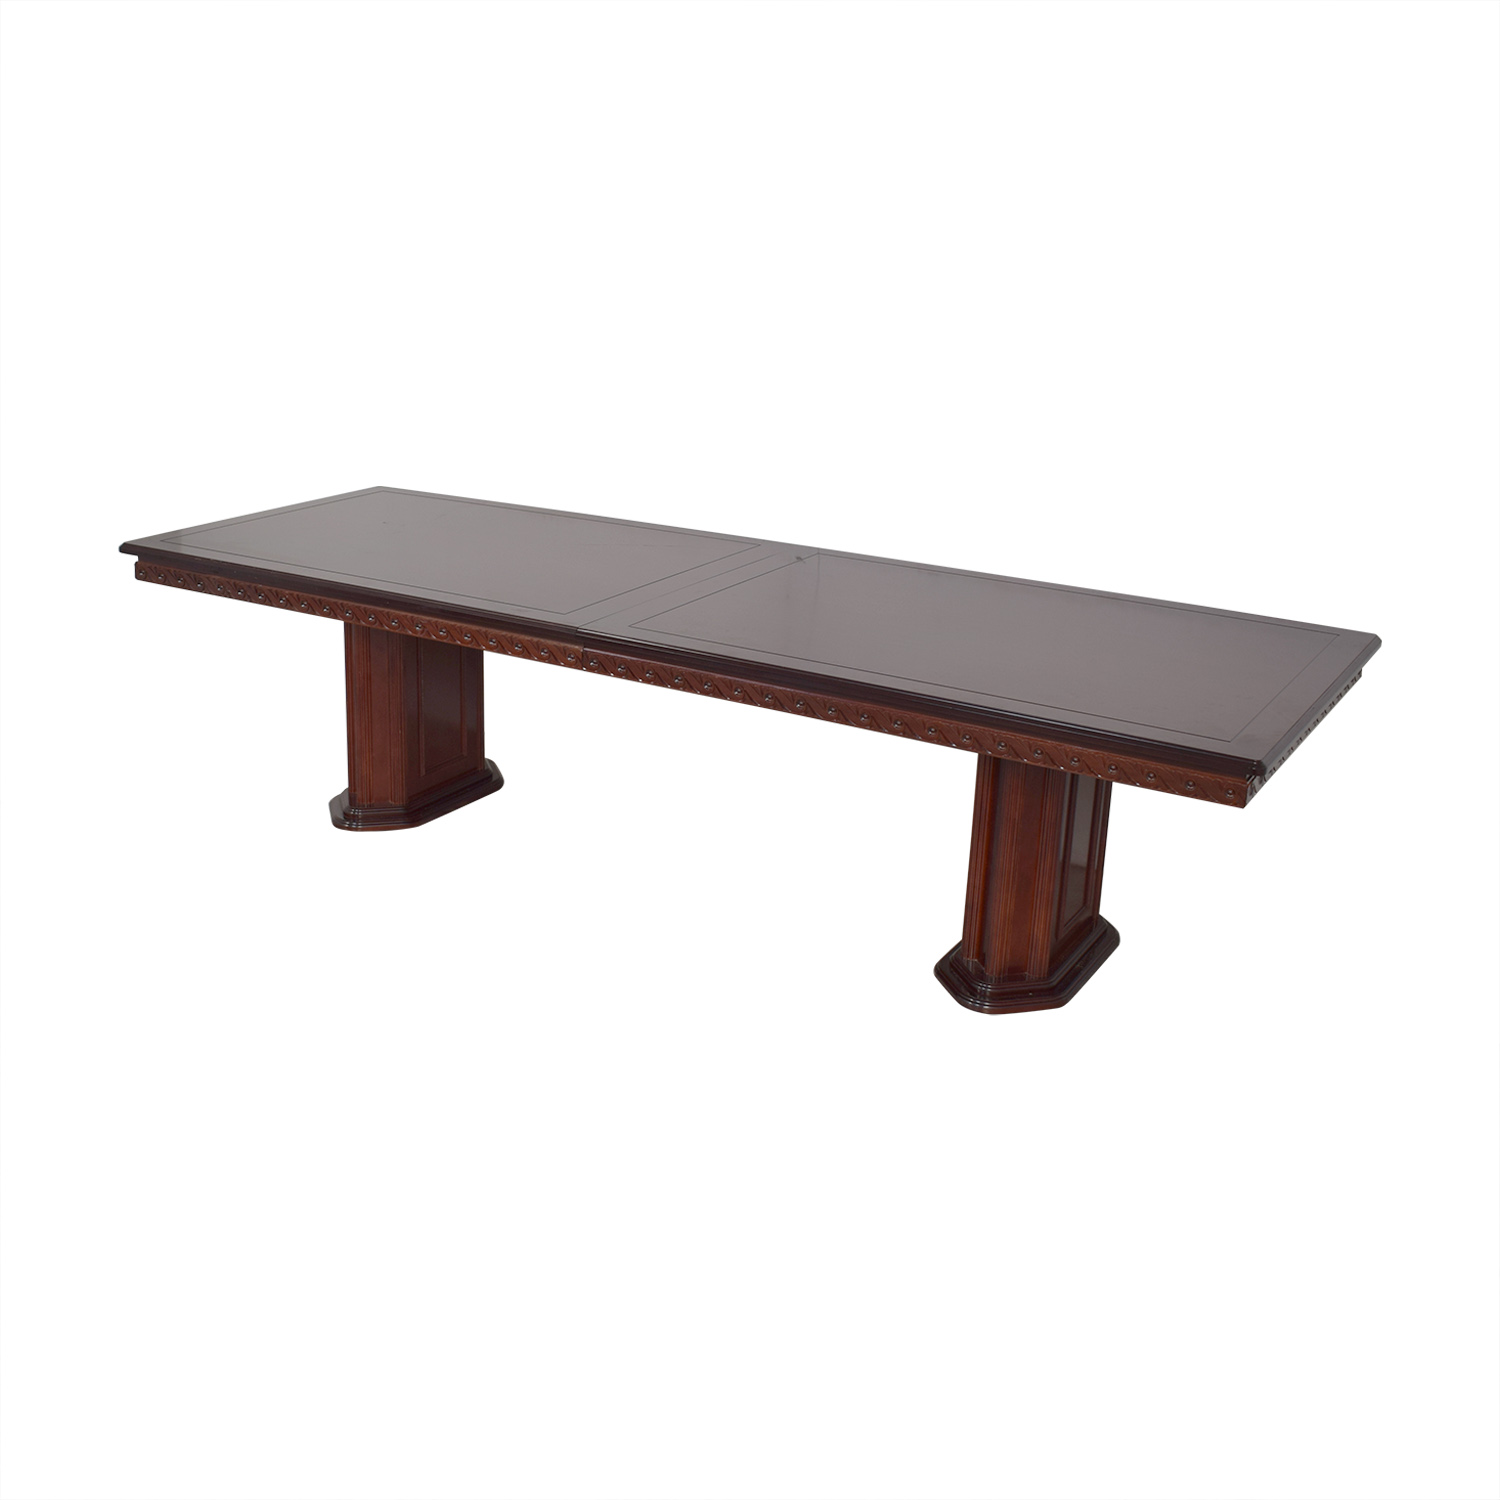 Rectangular Extendable Dining Room Table dark brown